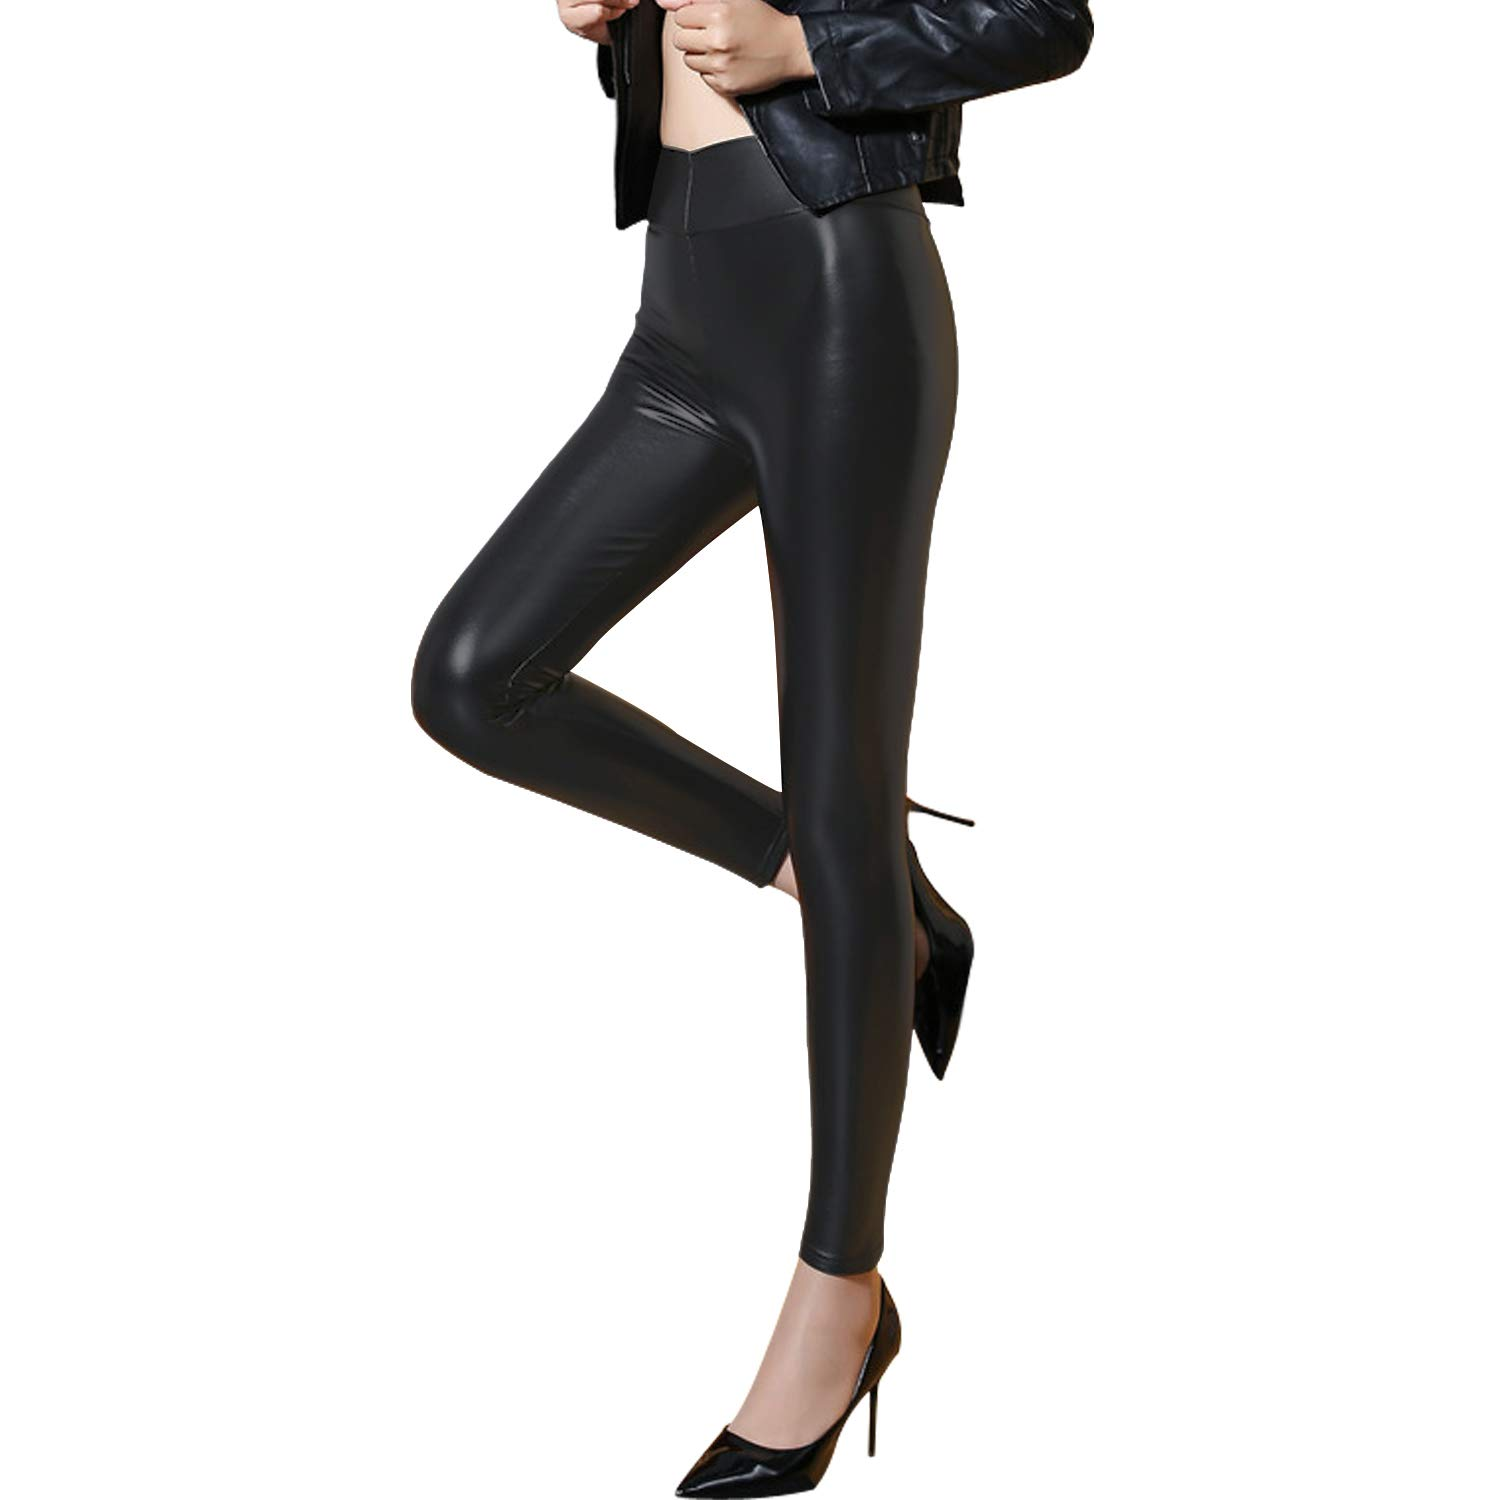 aba21b610576a8 Tulucky Women's Sexy PU Leather Pants Stretchy High Waist/Mid Waist Leggings (S,Midwaist-Black)